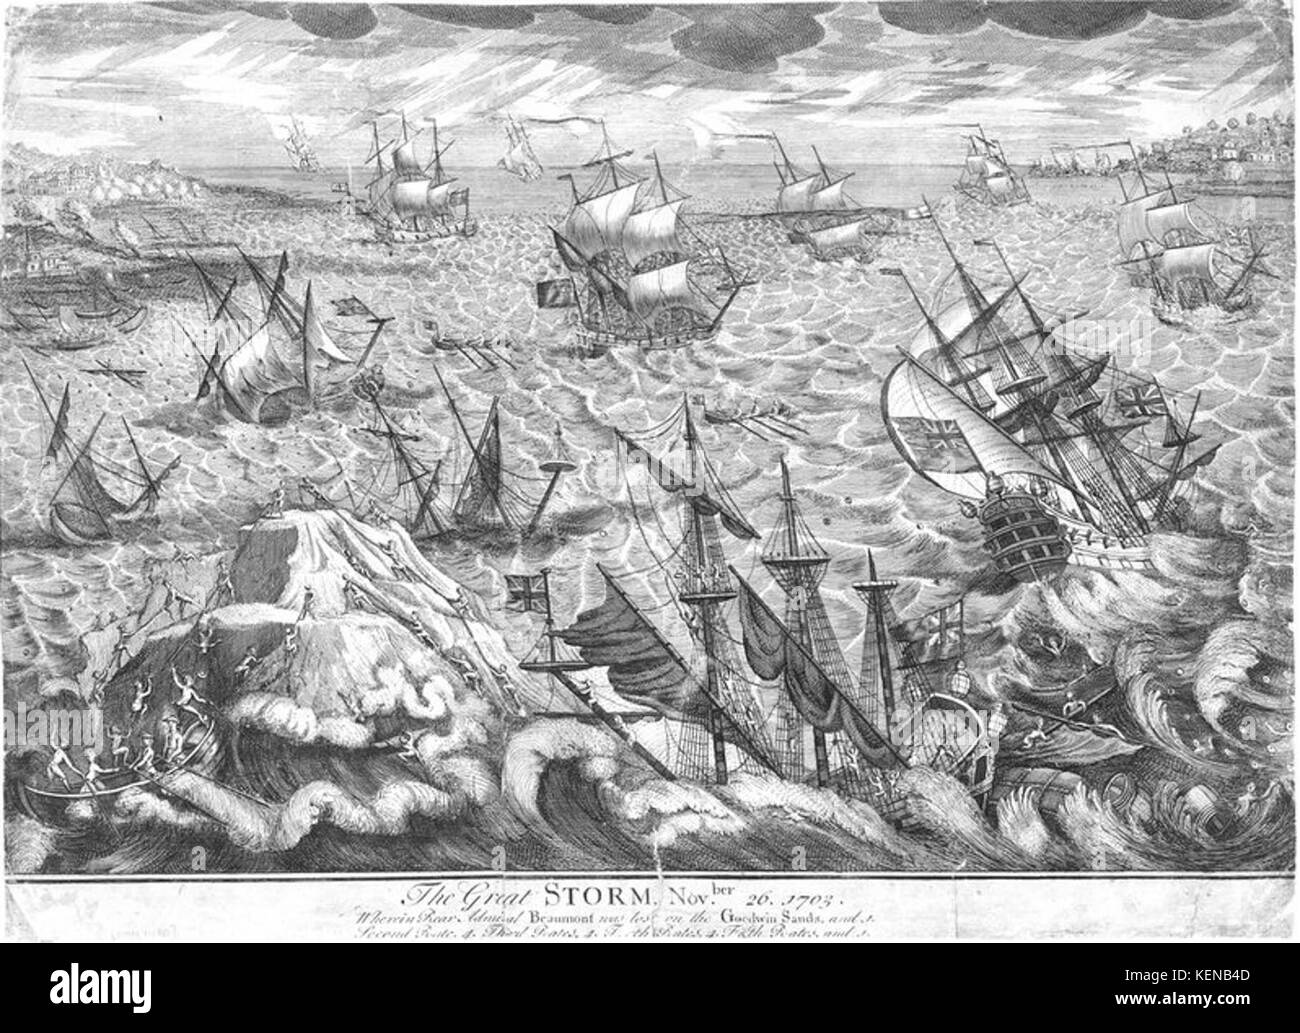 'The Great Storm Novber 26 1703 Wherein Rear Admiral Beaumont was lost on the Goodwin Sands... Beaumont's - Stock Image